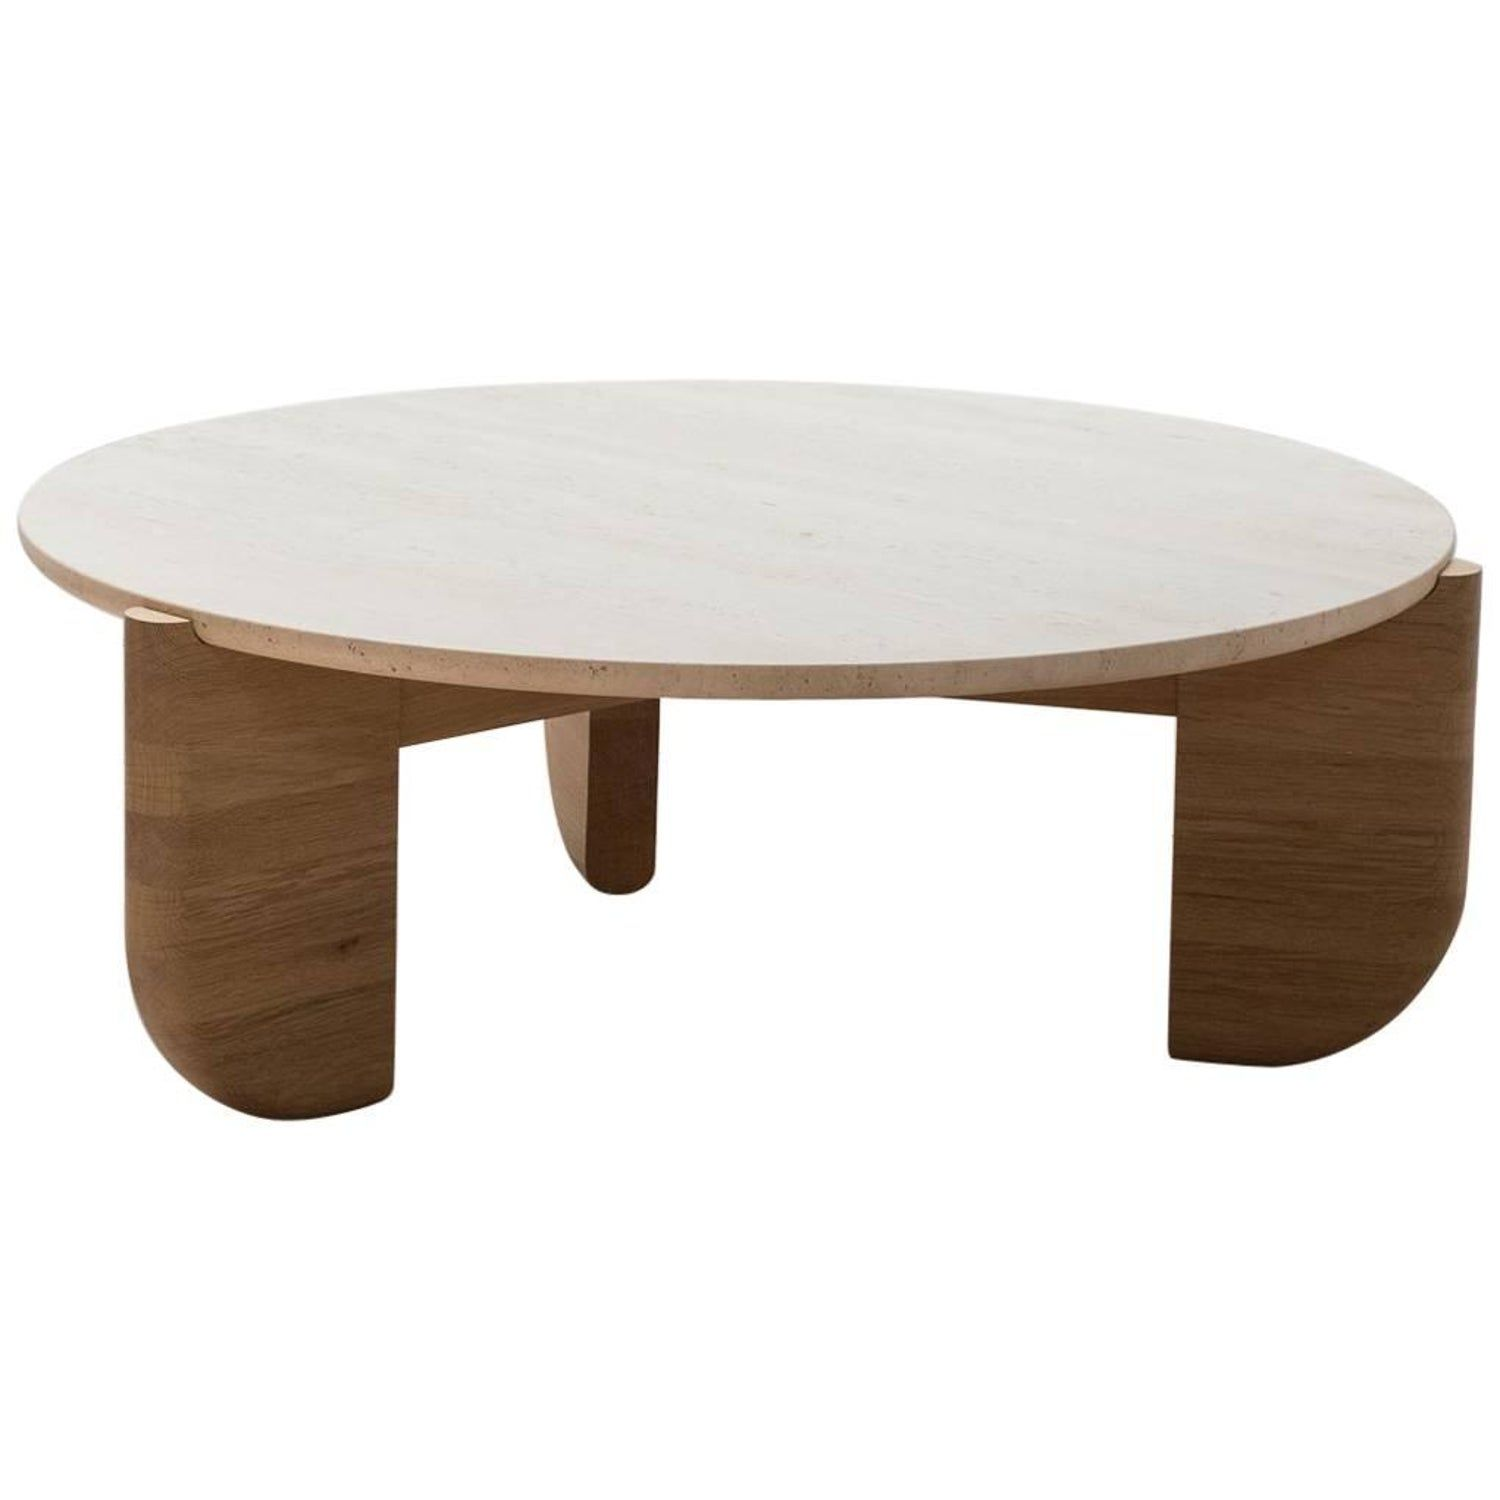 Tripod Coffee Table In White Oak And Travertine Coffee Table White Oak Coffee Table Danish Modern Coffee Table [ 1500 x 1500 Pixel ]